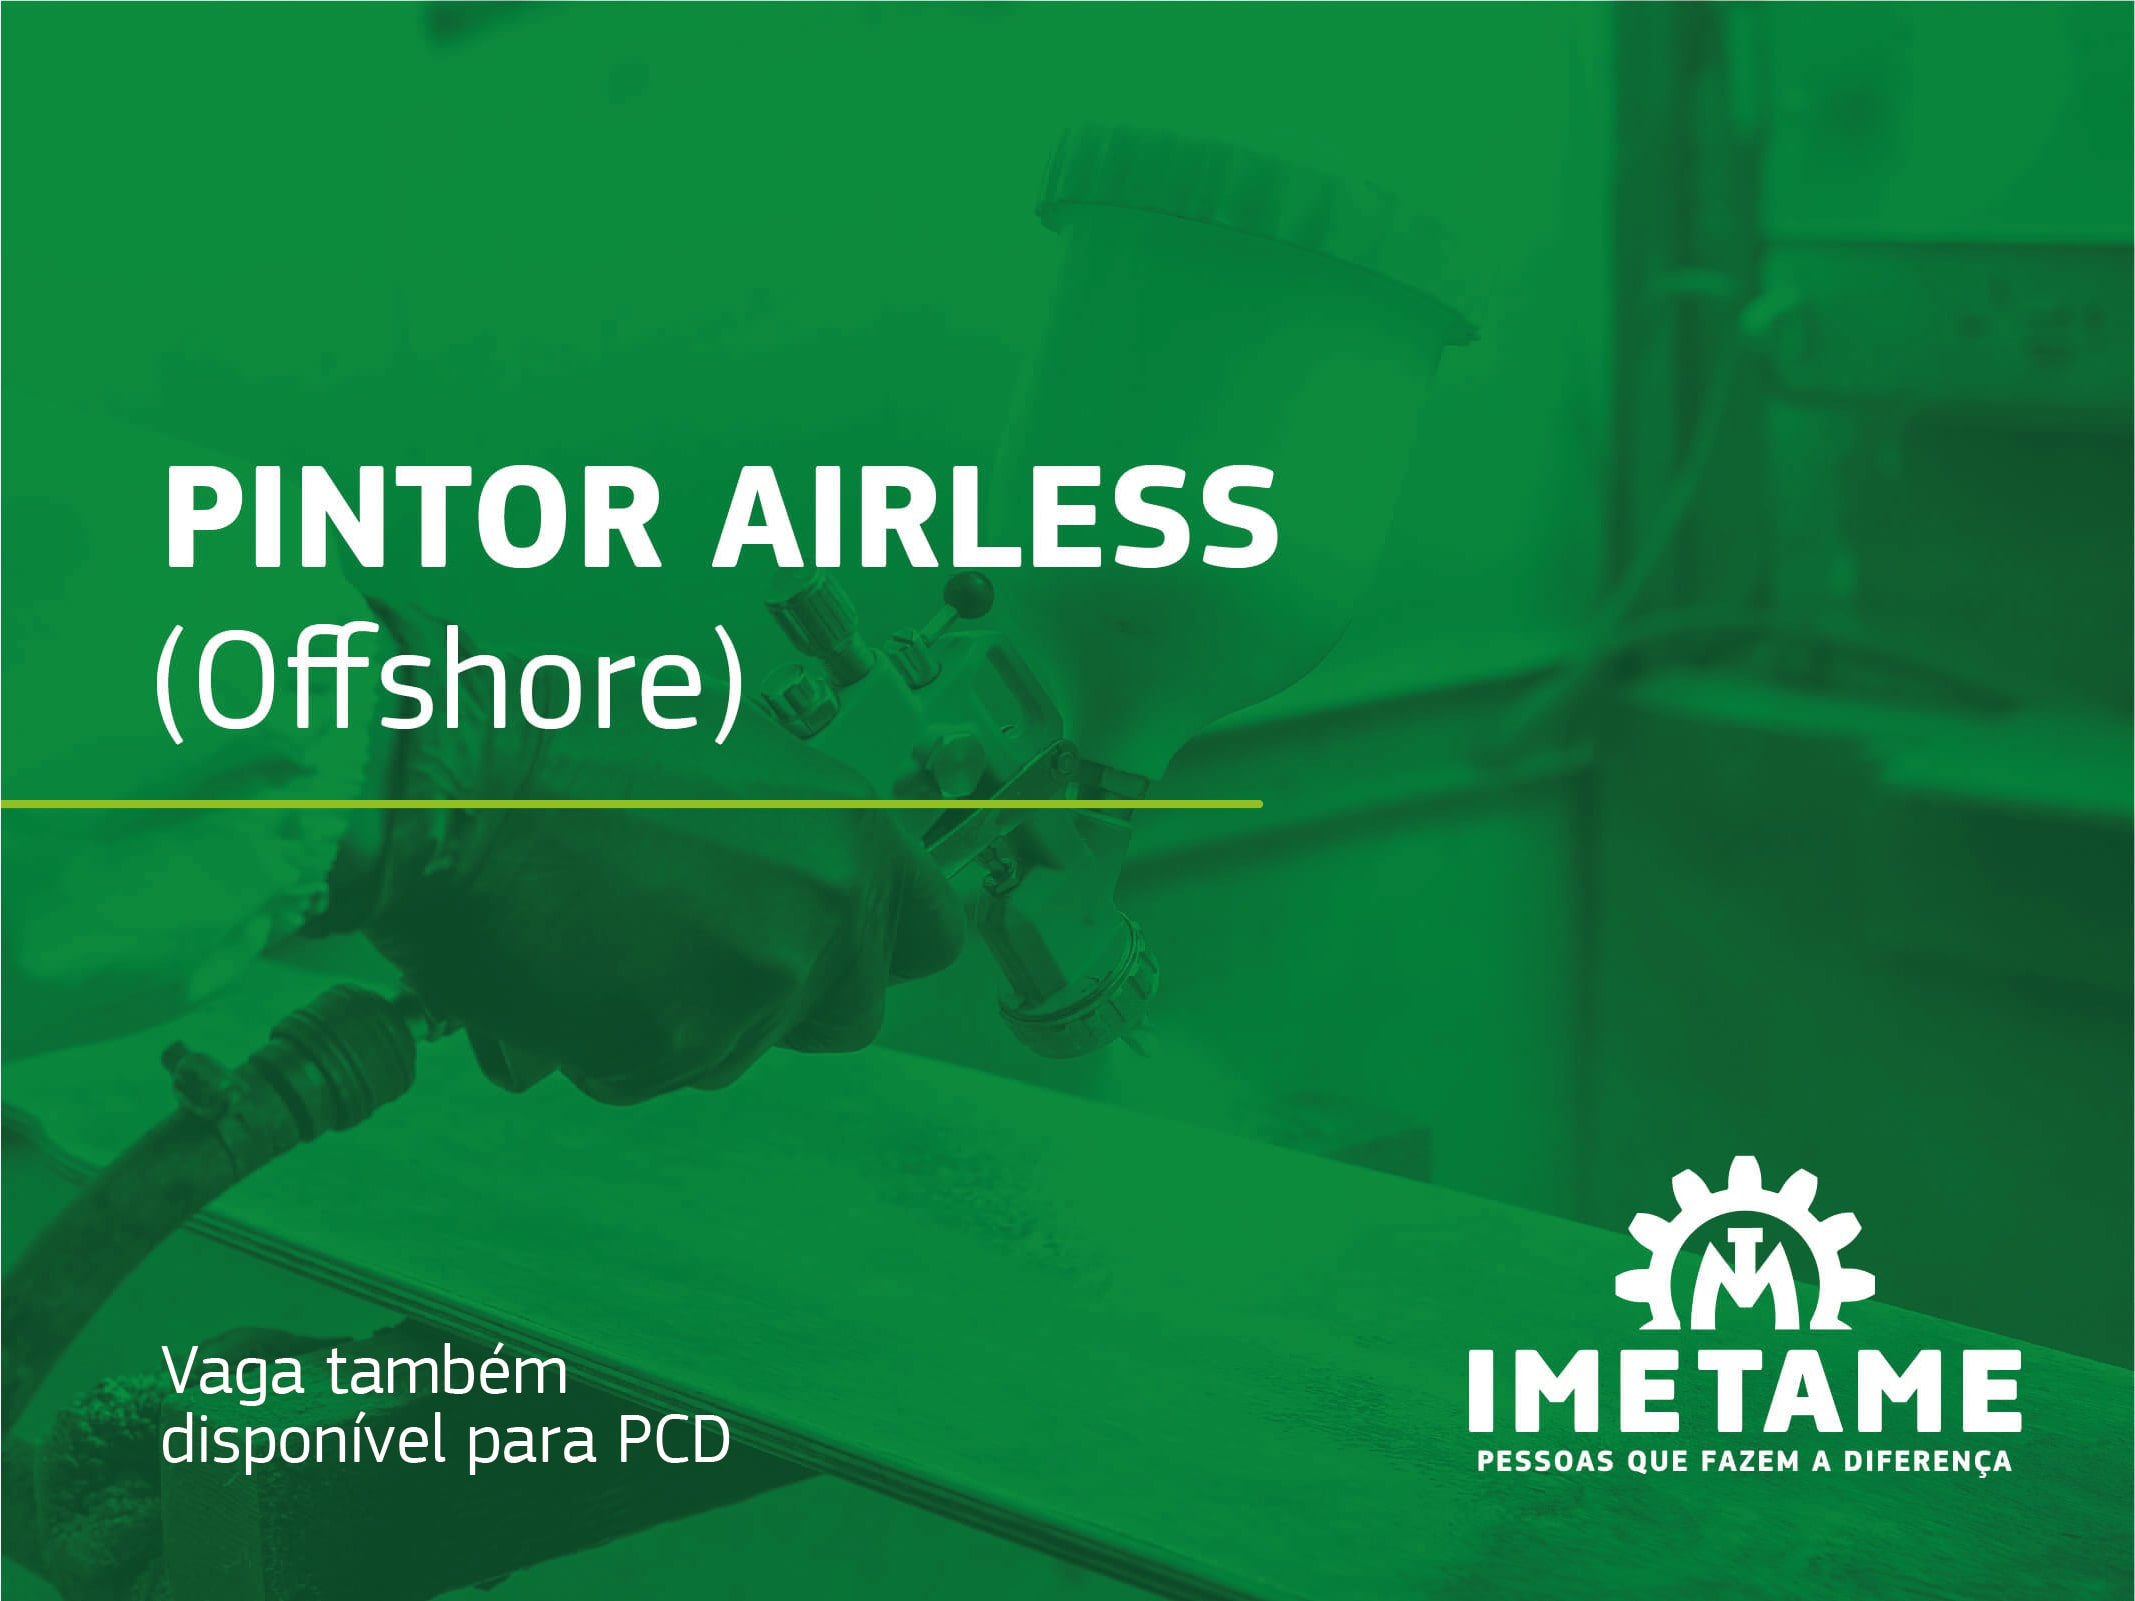 Pintor Airless – Offshore